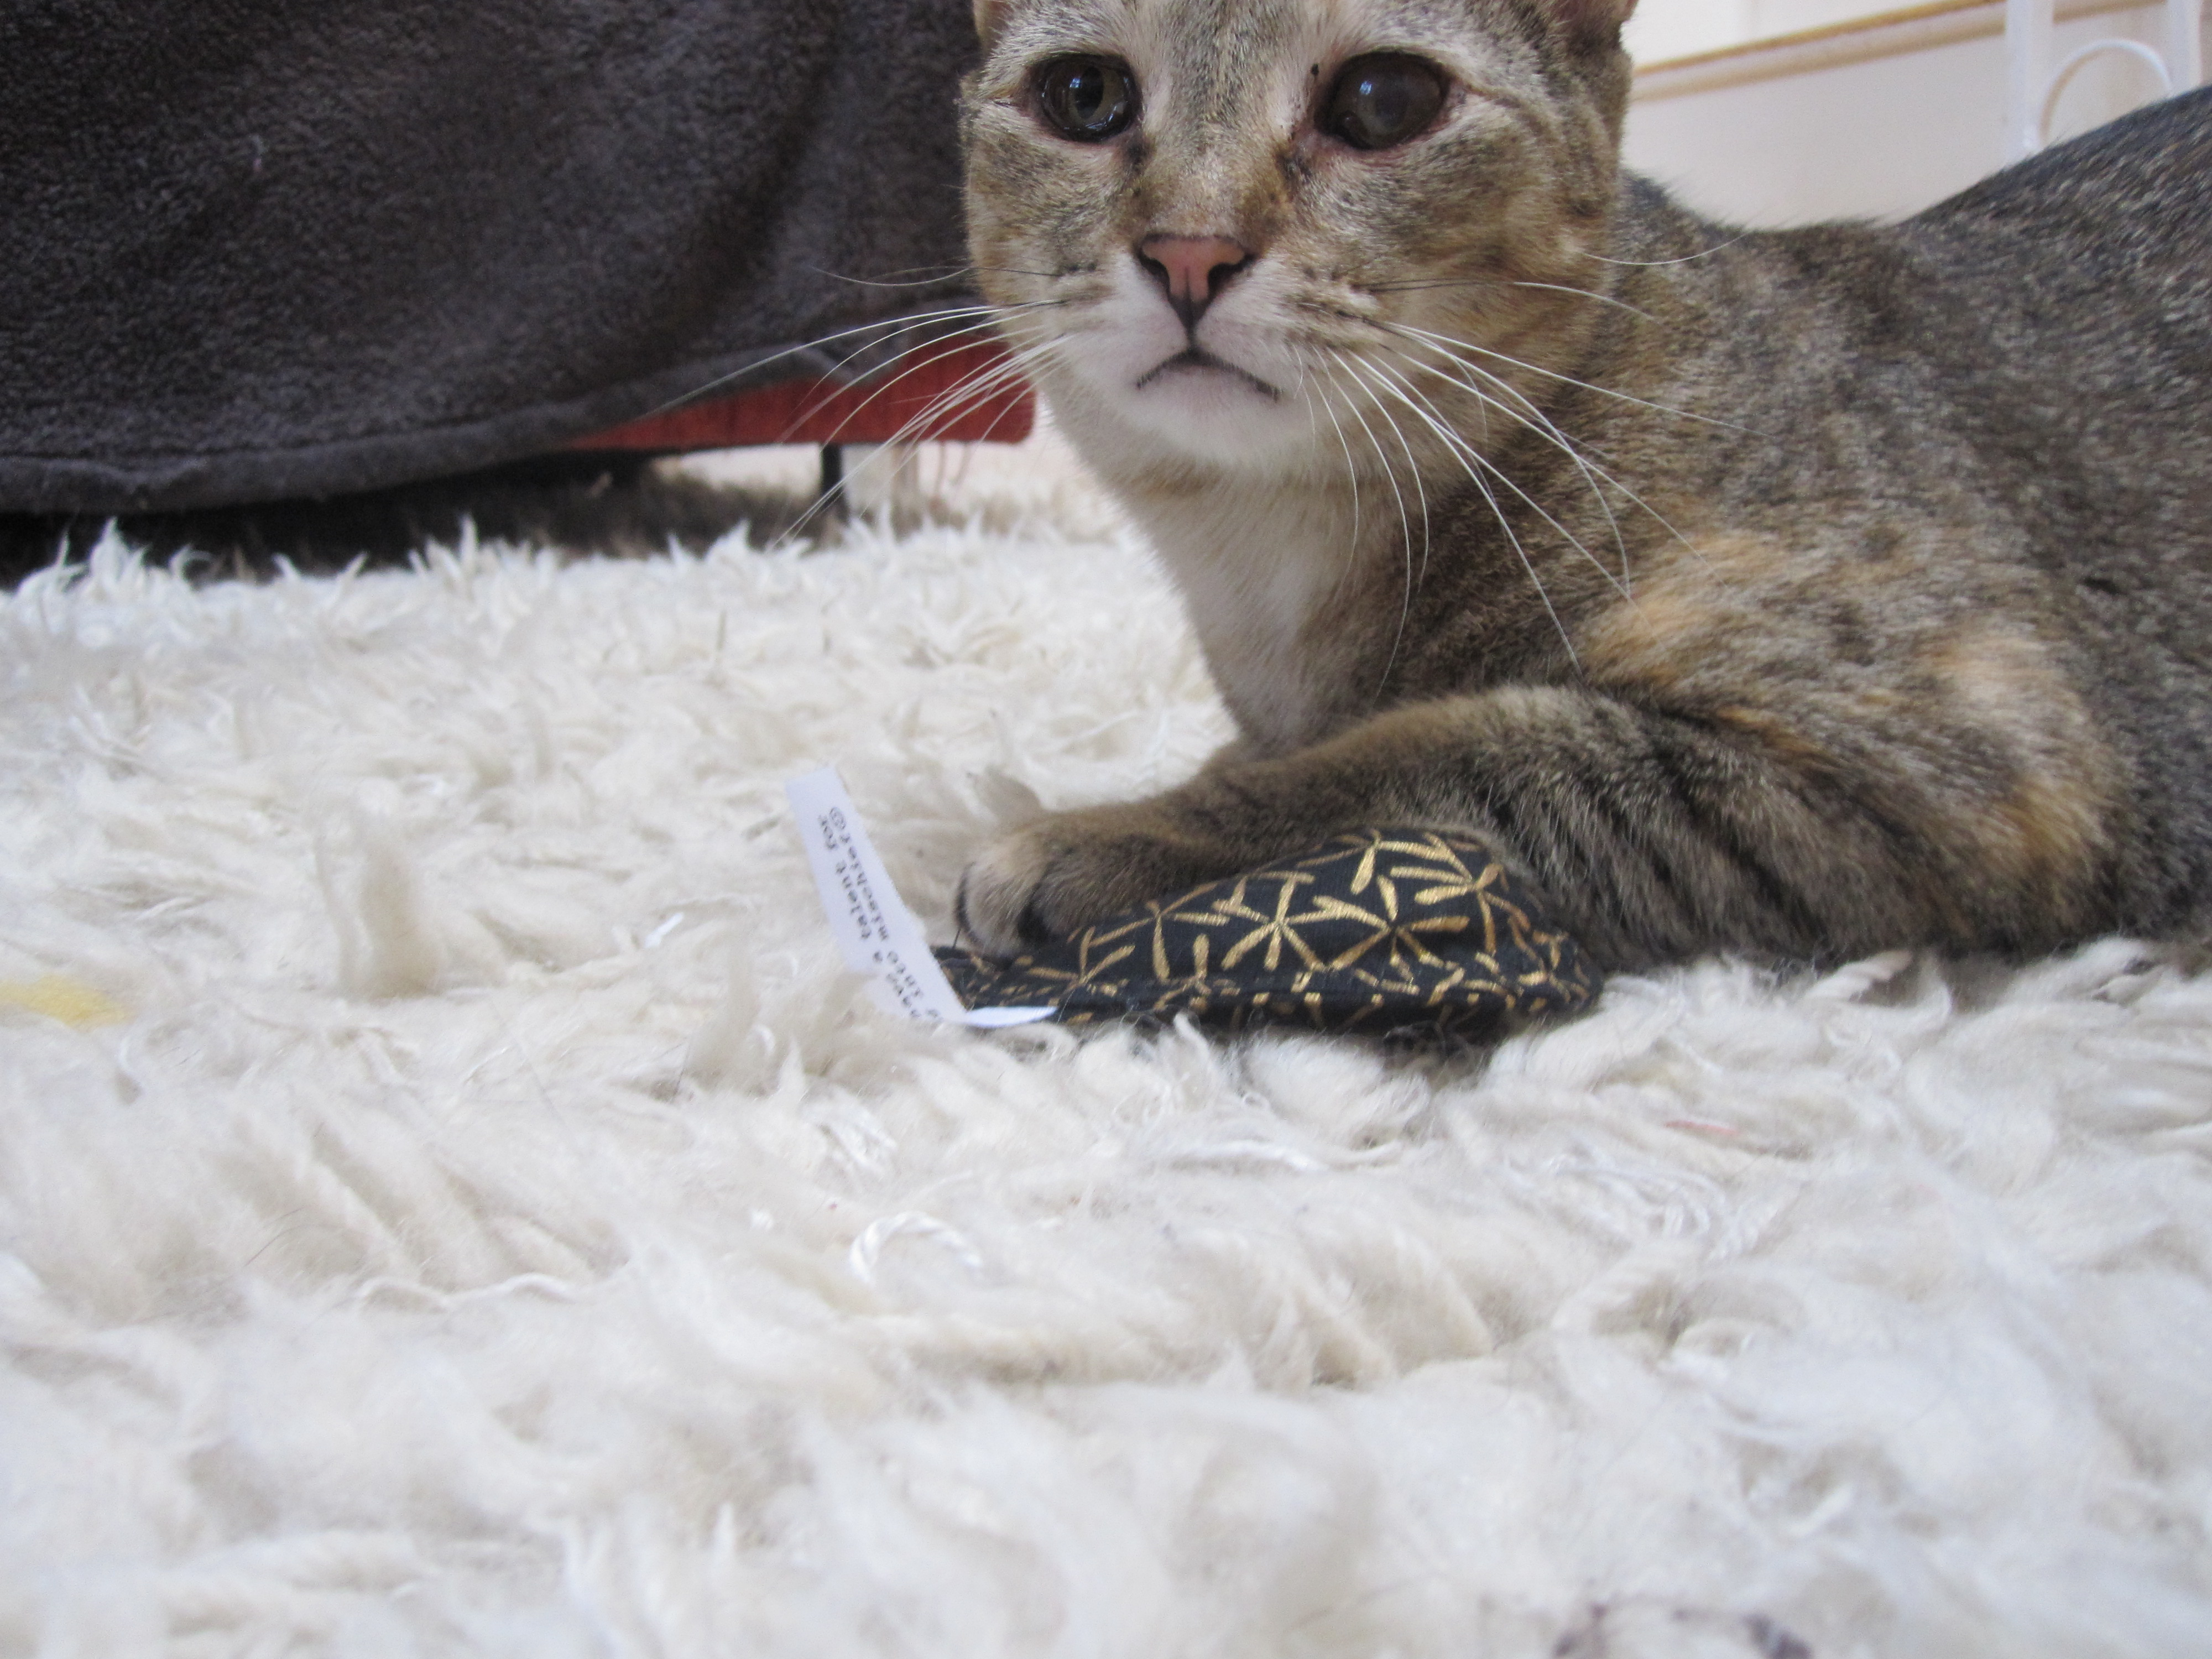 Modern cat toys and accessories